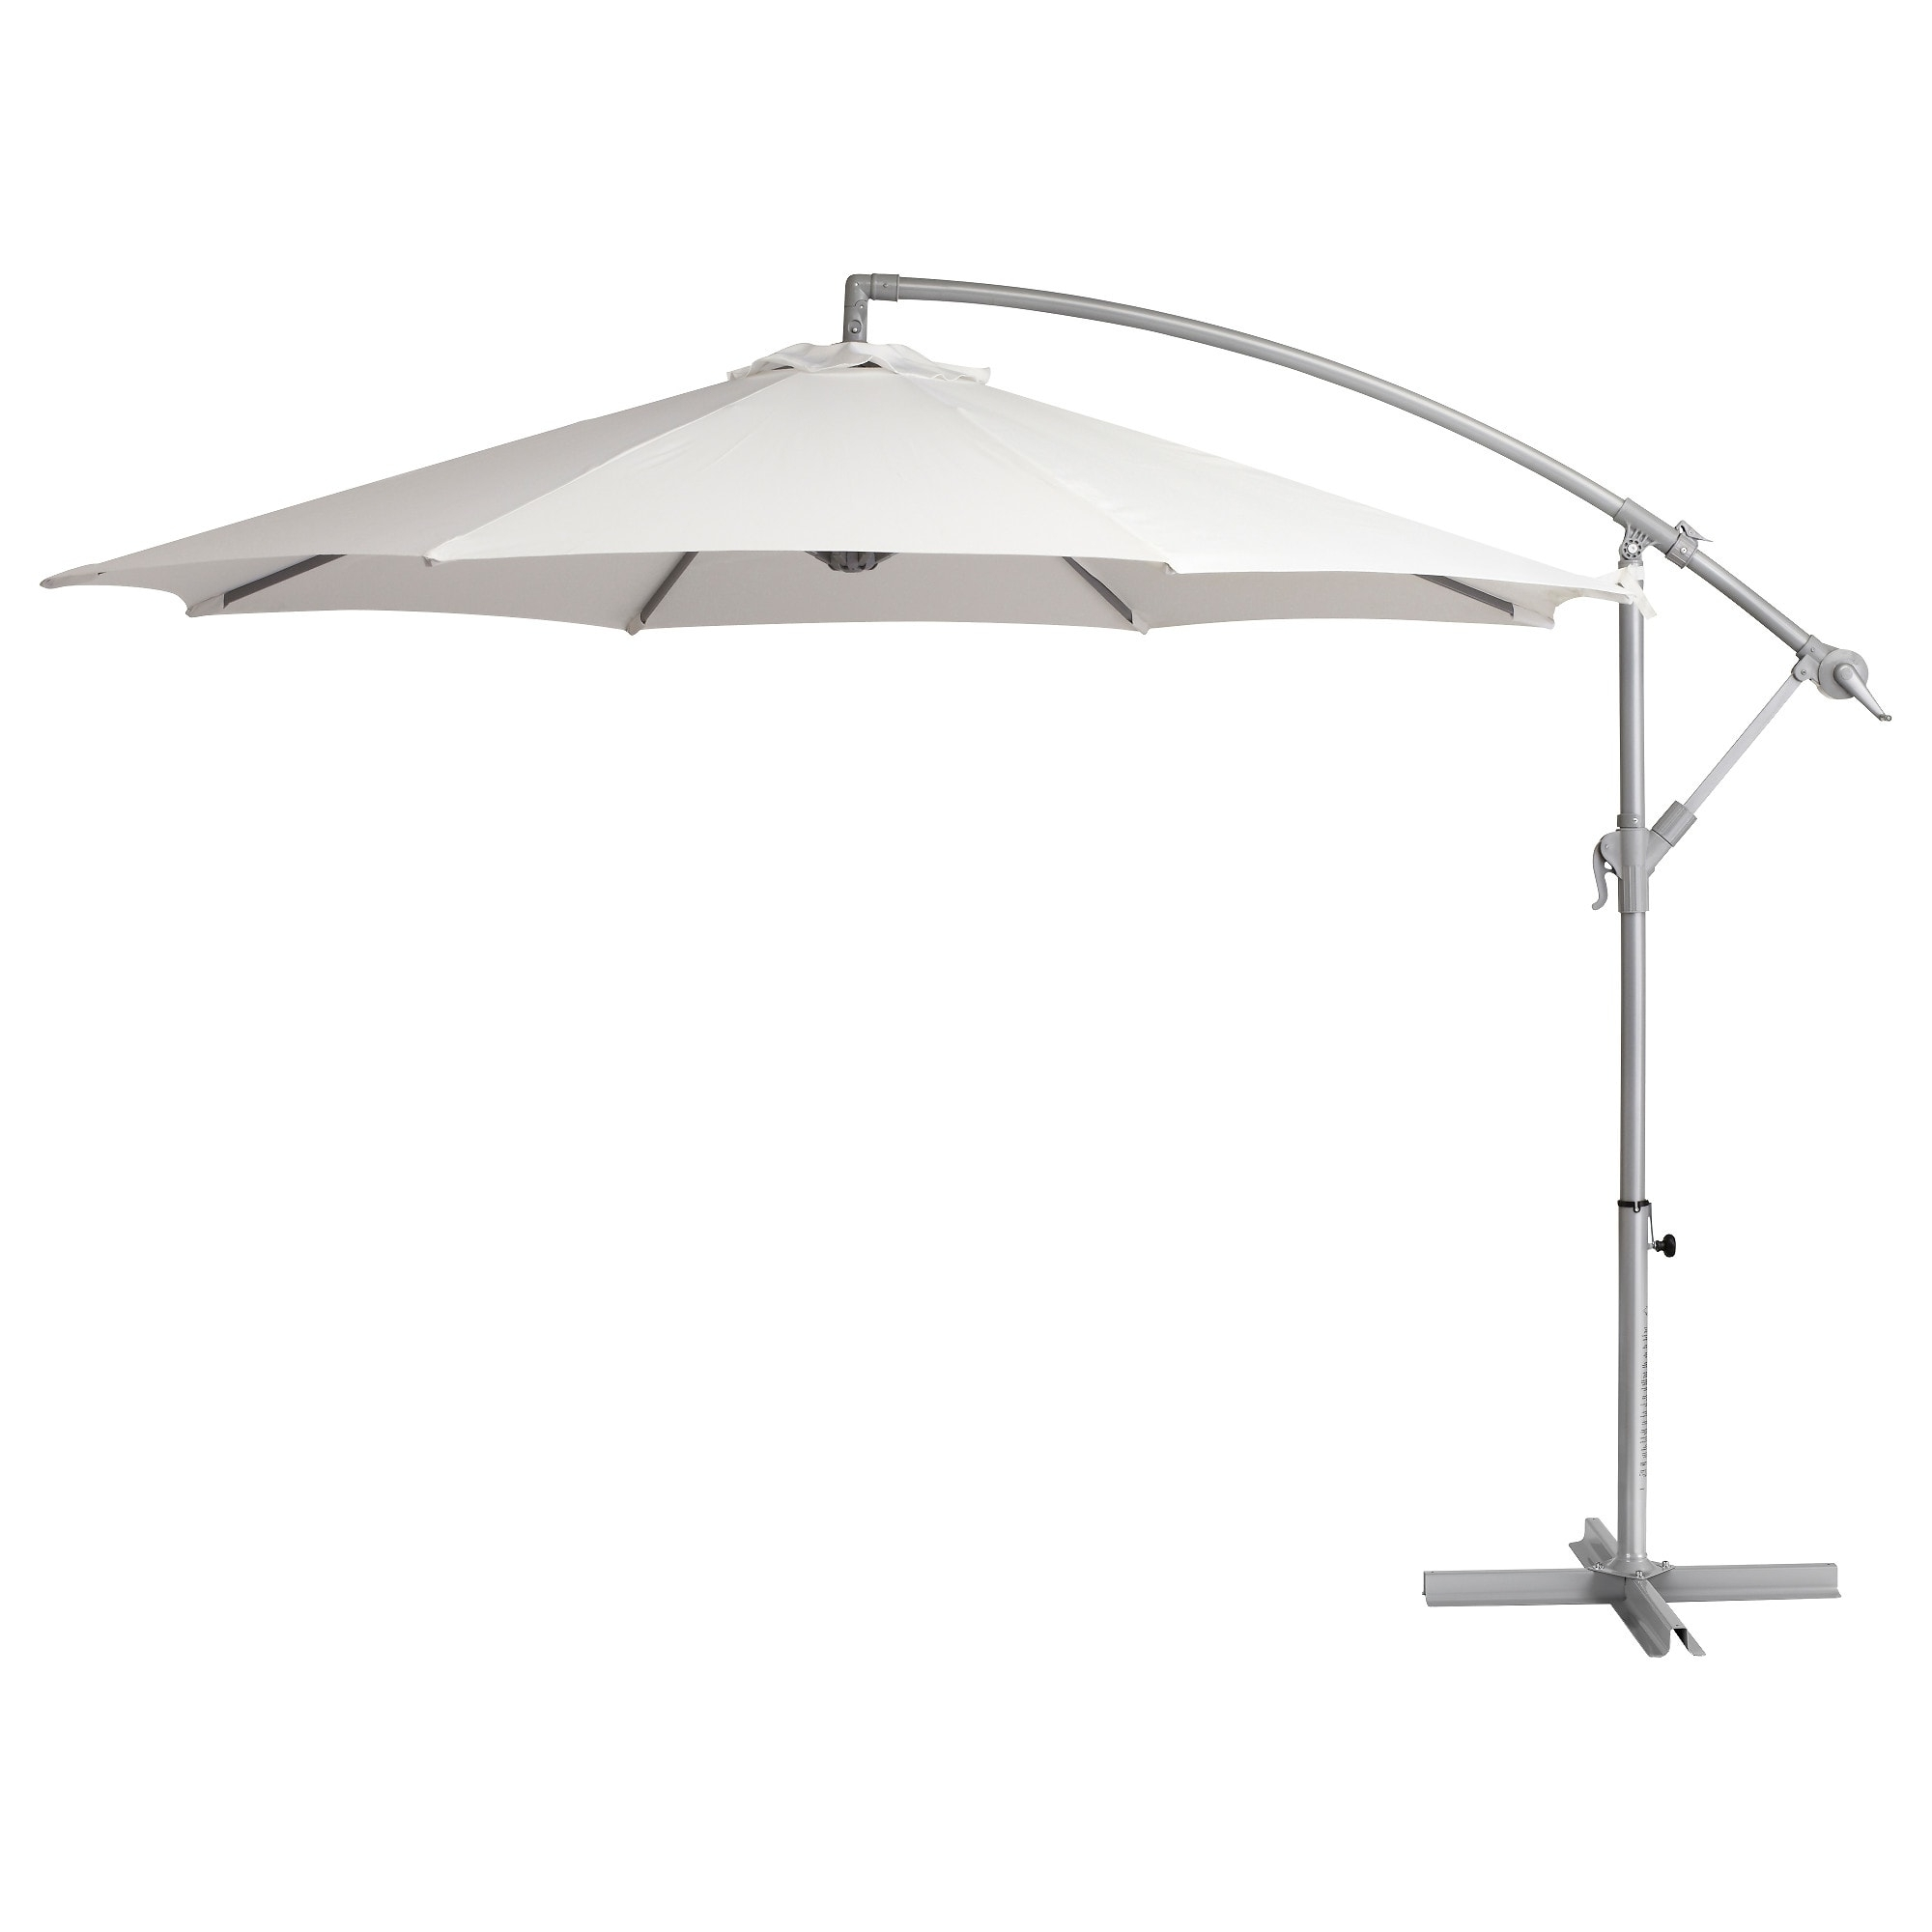 Baggön Offset Patio Umbrella – Ikea With Regard To Widely Used Patio Umbrellas With White Pole (Gallery 10 of 20)